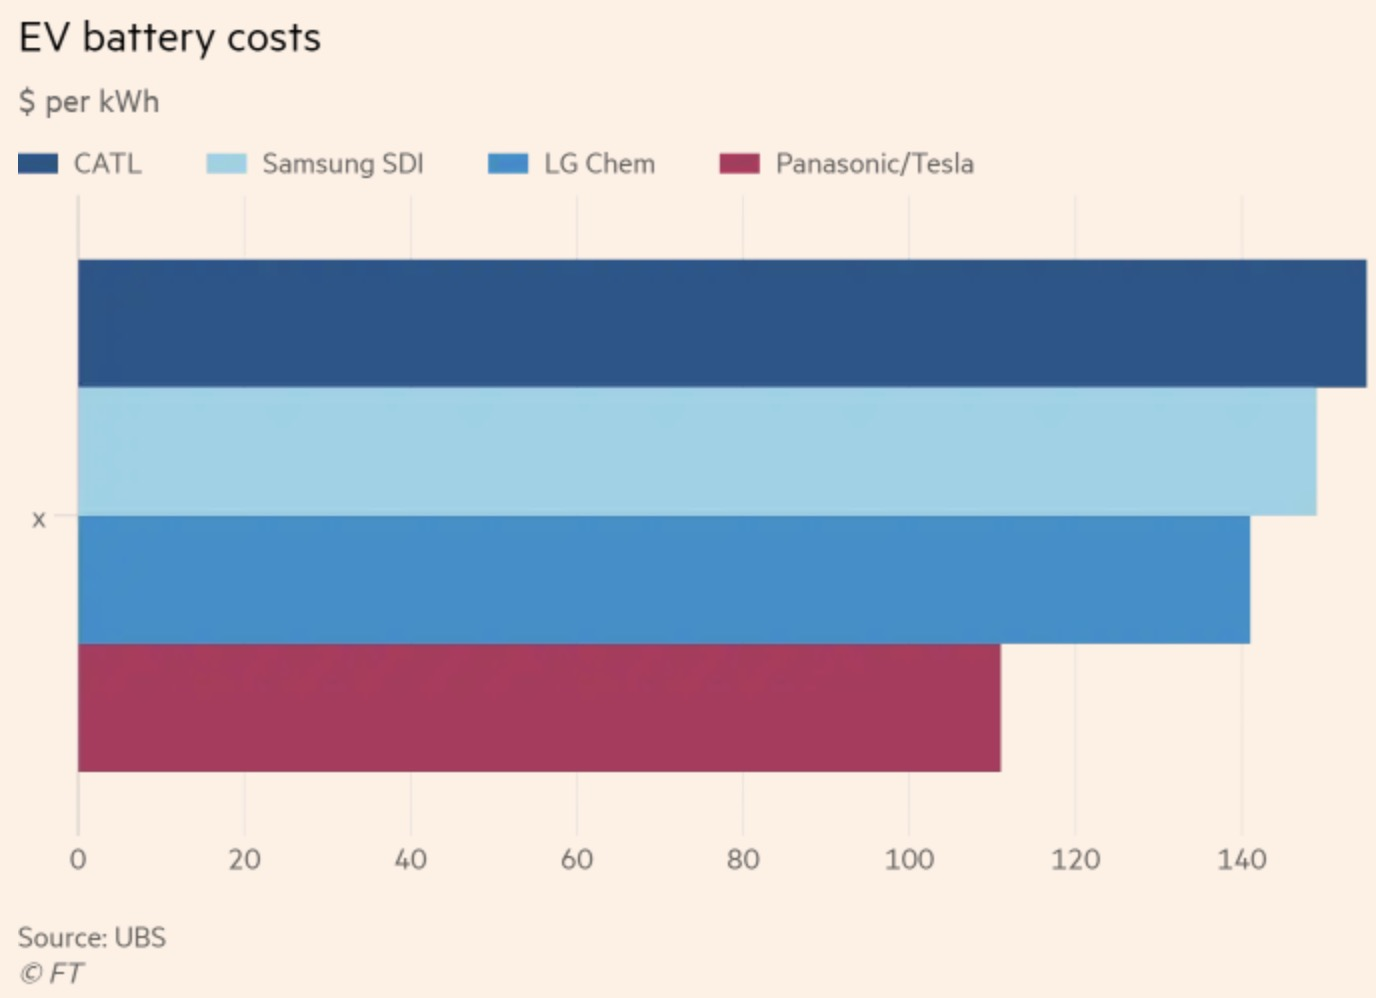 Tesla Battery Cost Per Kwh >> Tesla's Gigafactory 1 battery cells have a 20% cost advantage over LG, new report says - Electrek